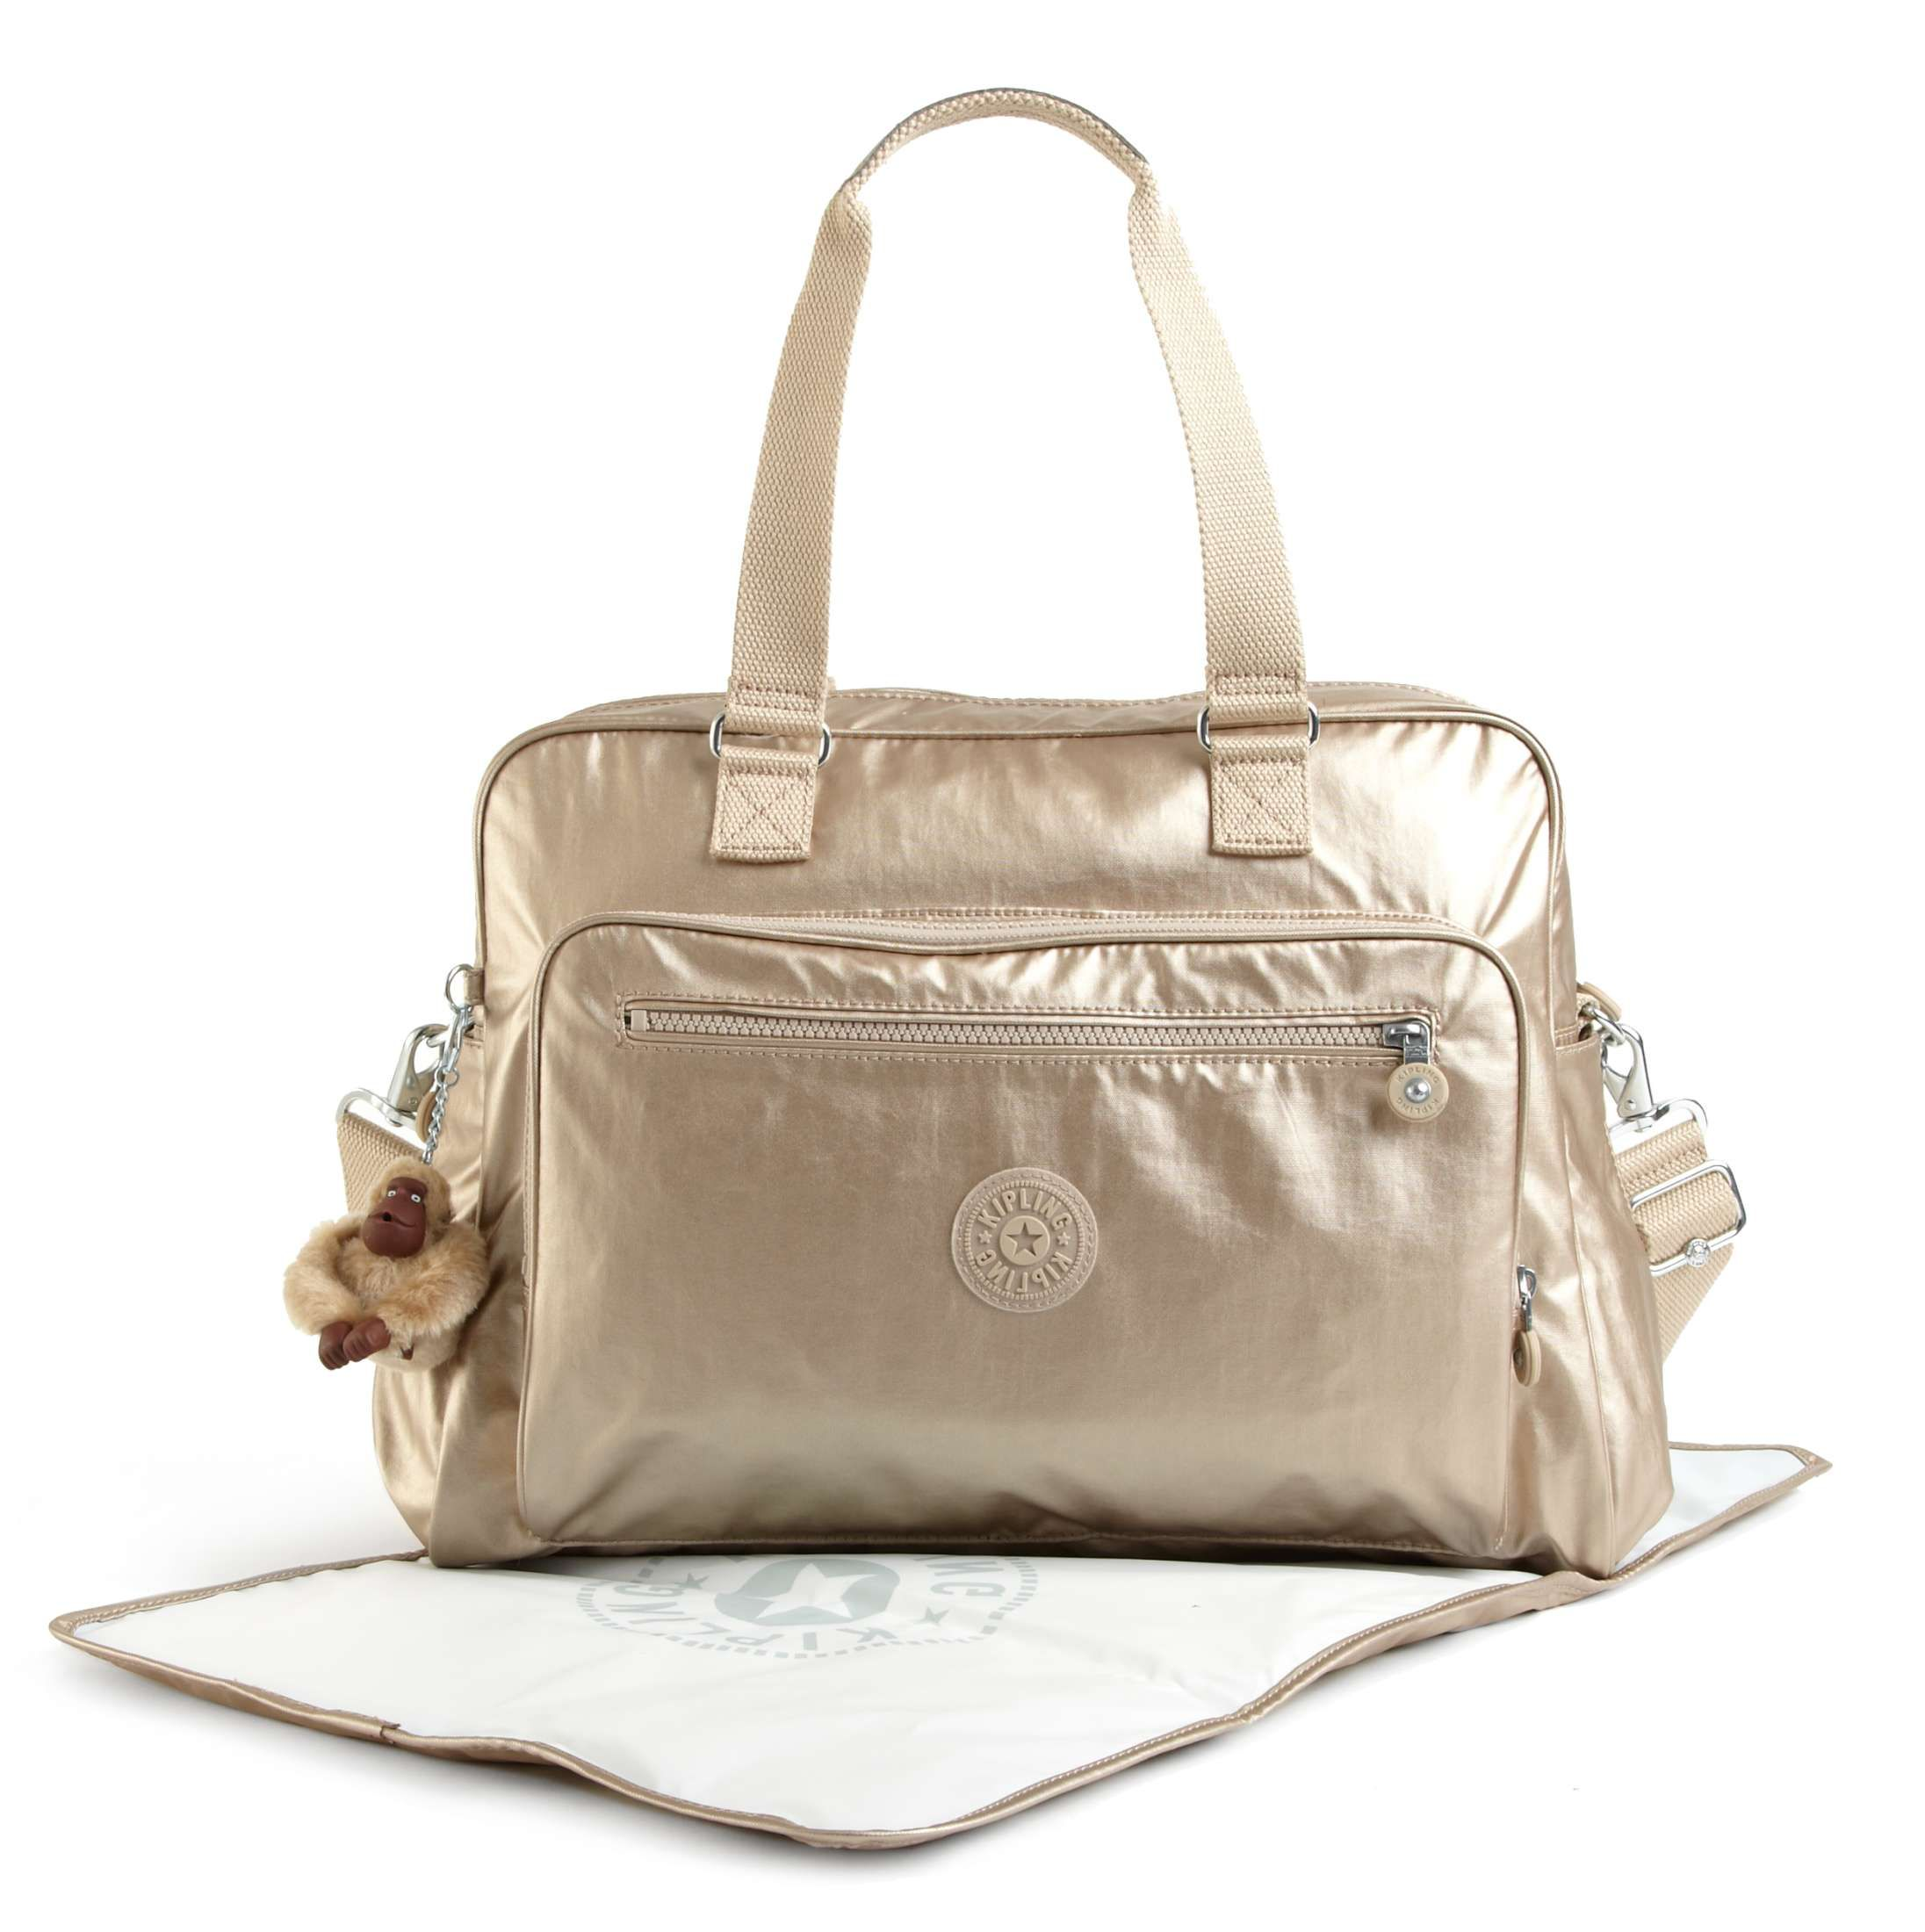 Alanna Metallic Baby Bag Kipling